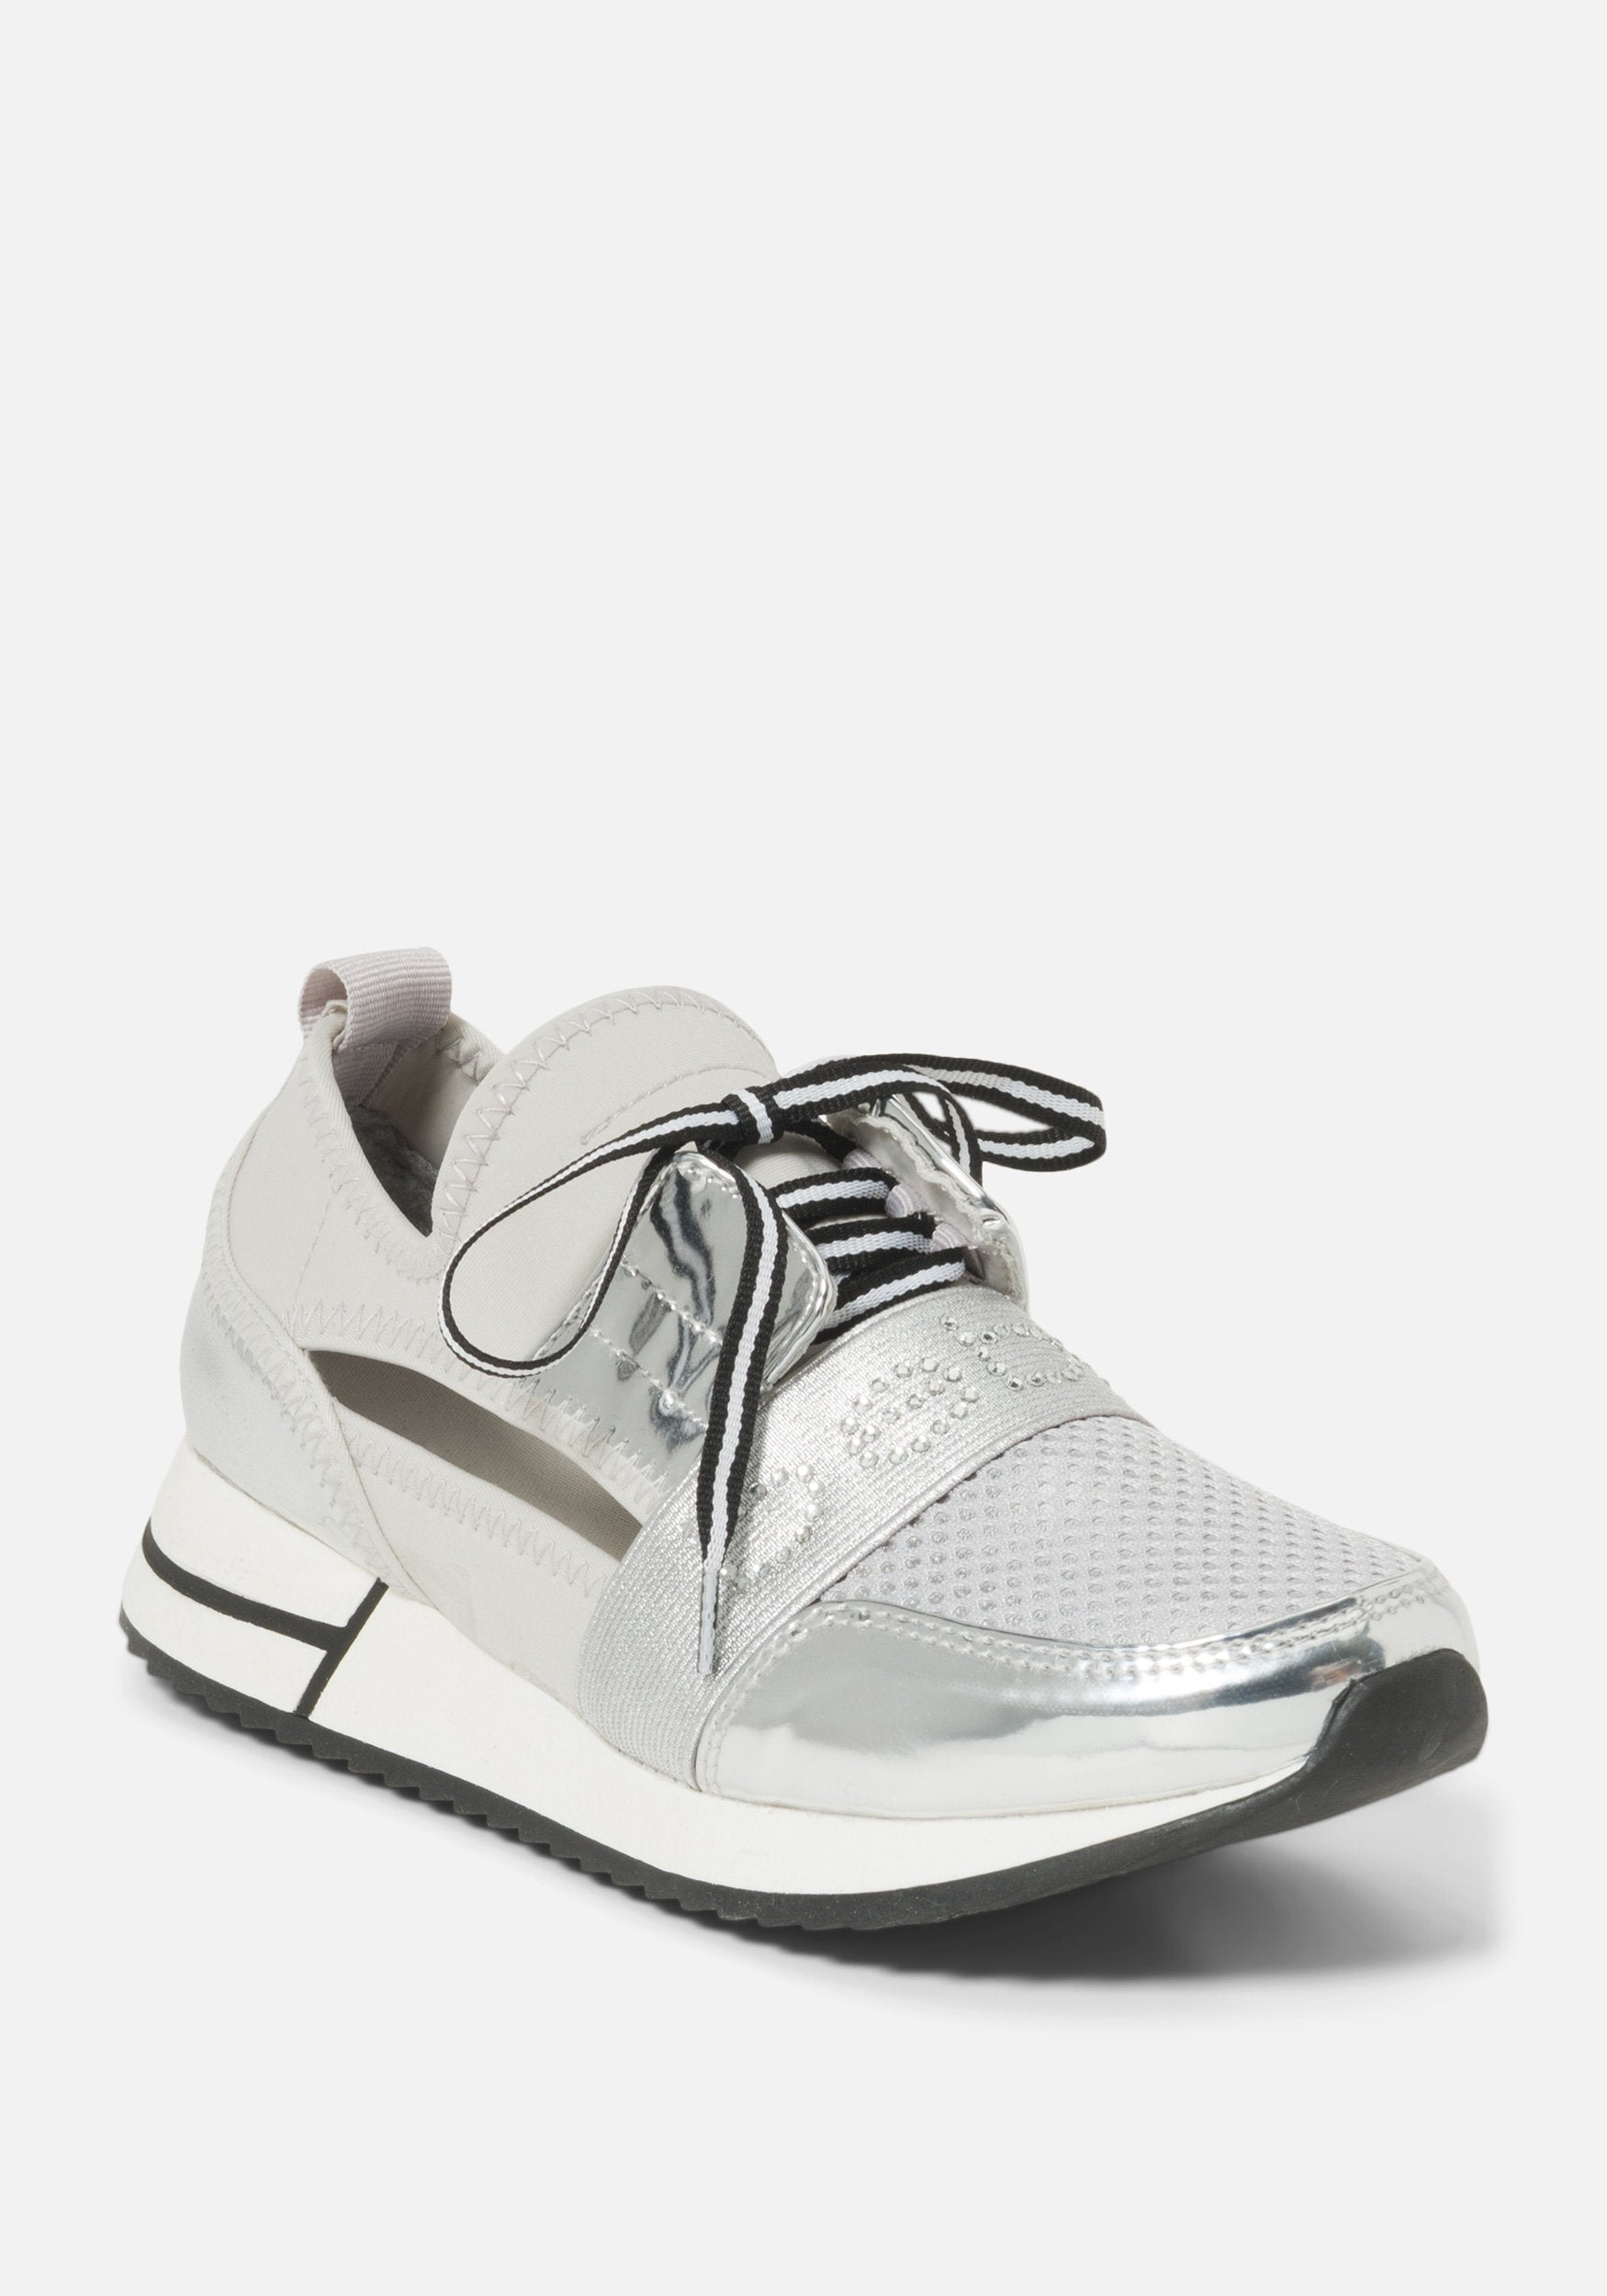 Image of Bebe Women's Brienna Shoe, Size 9.5 in GREY SILVER Synthetic